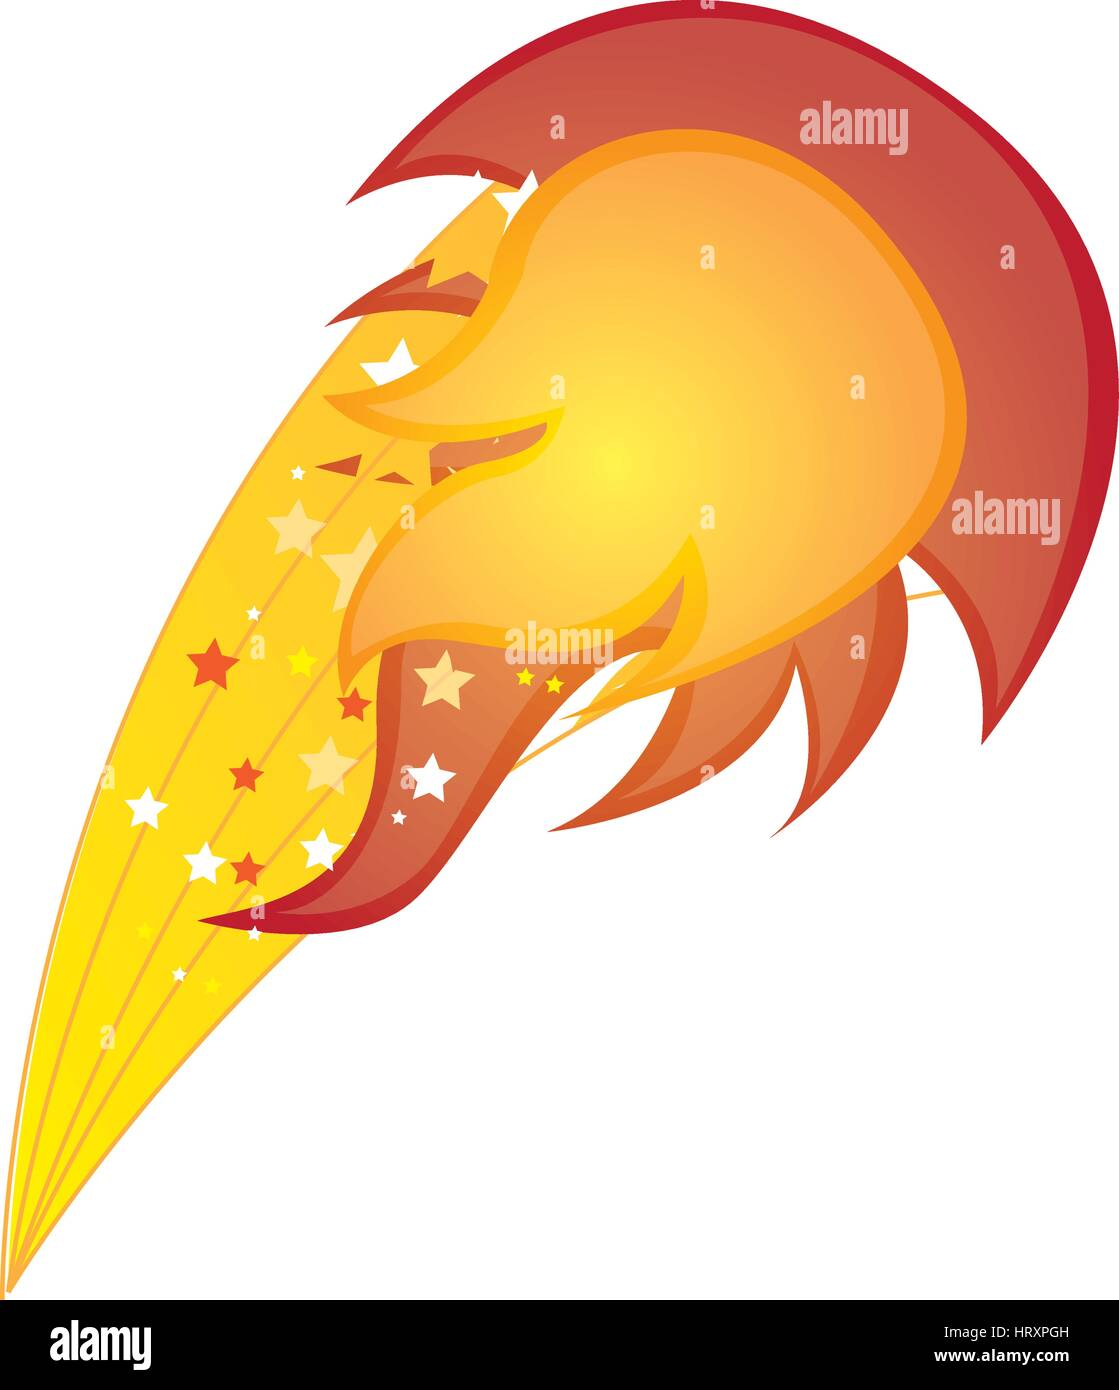 colorful silhouette with yellow olympic flame vector illustration - Stock Vector